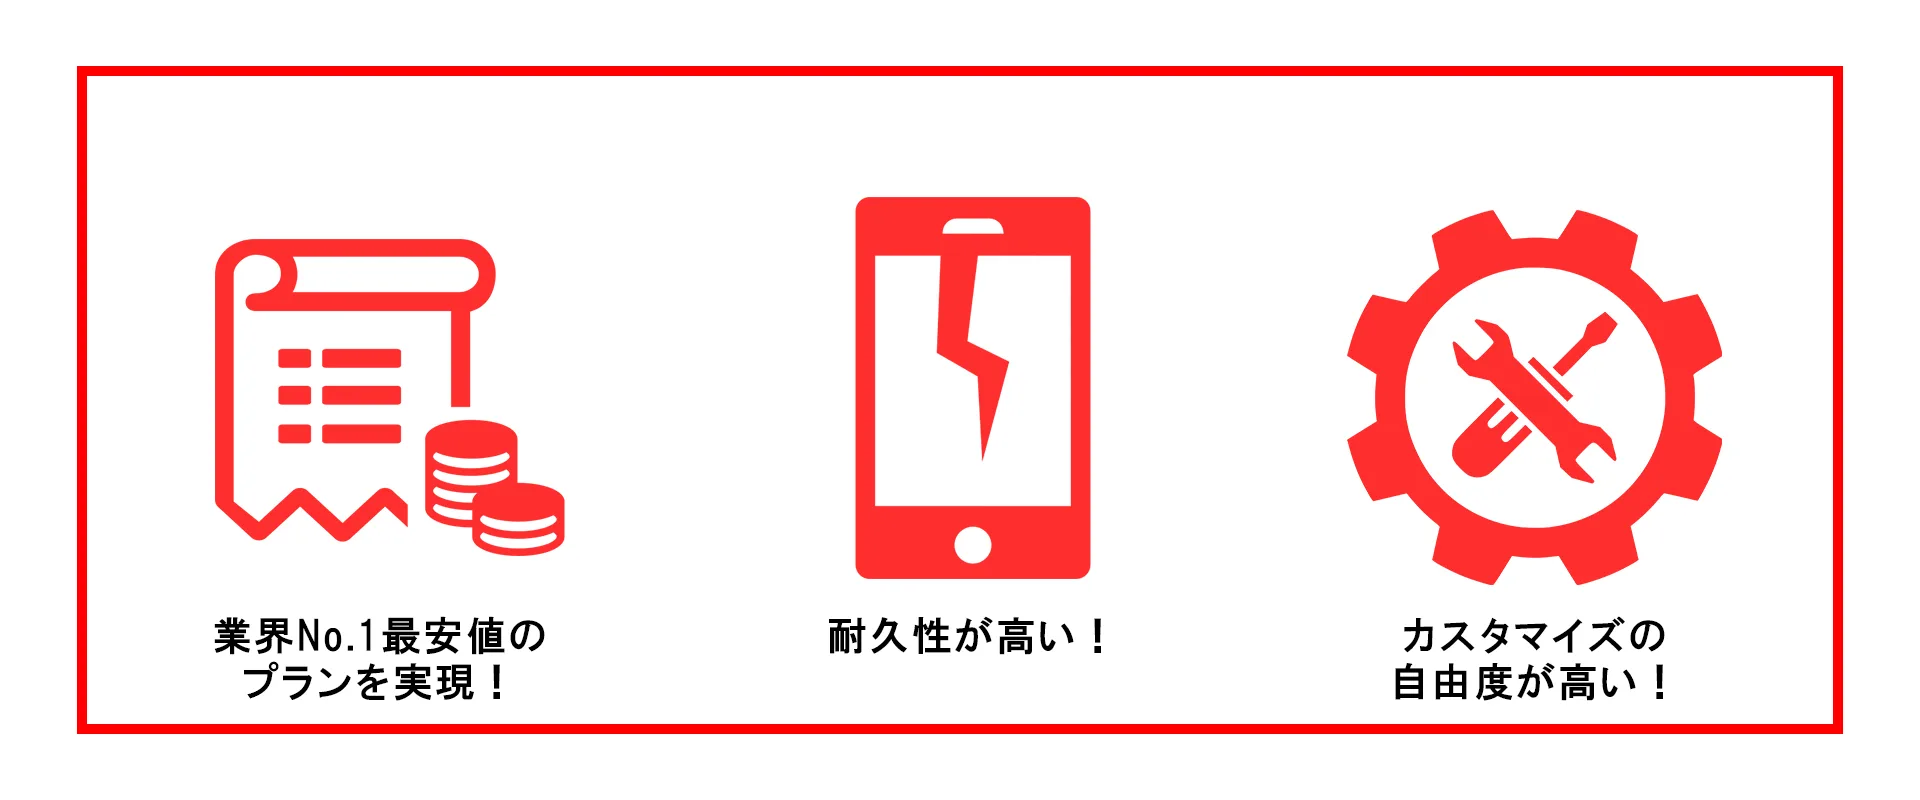 Androidのメリット